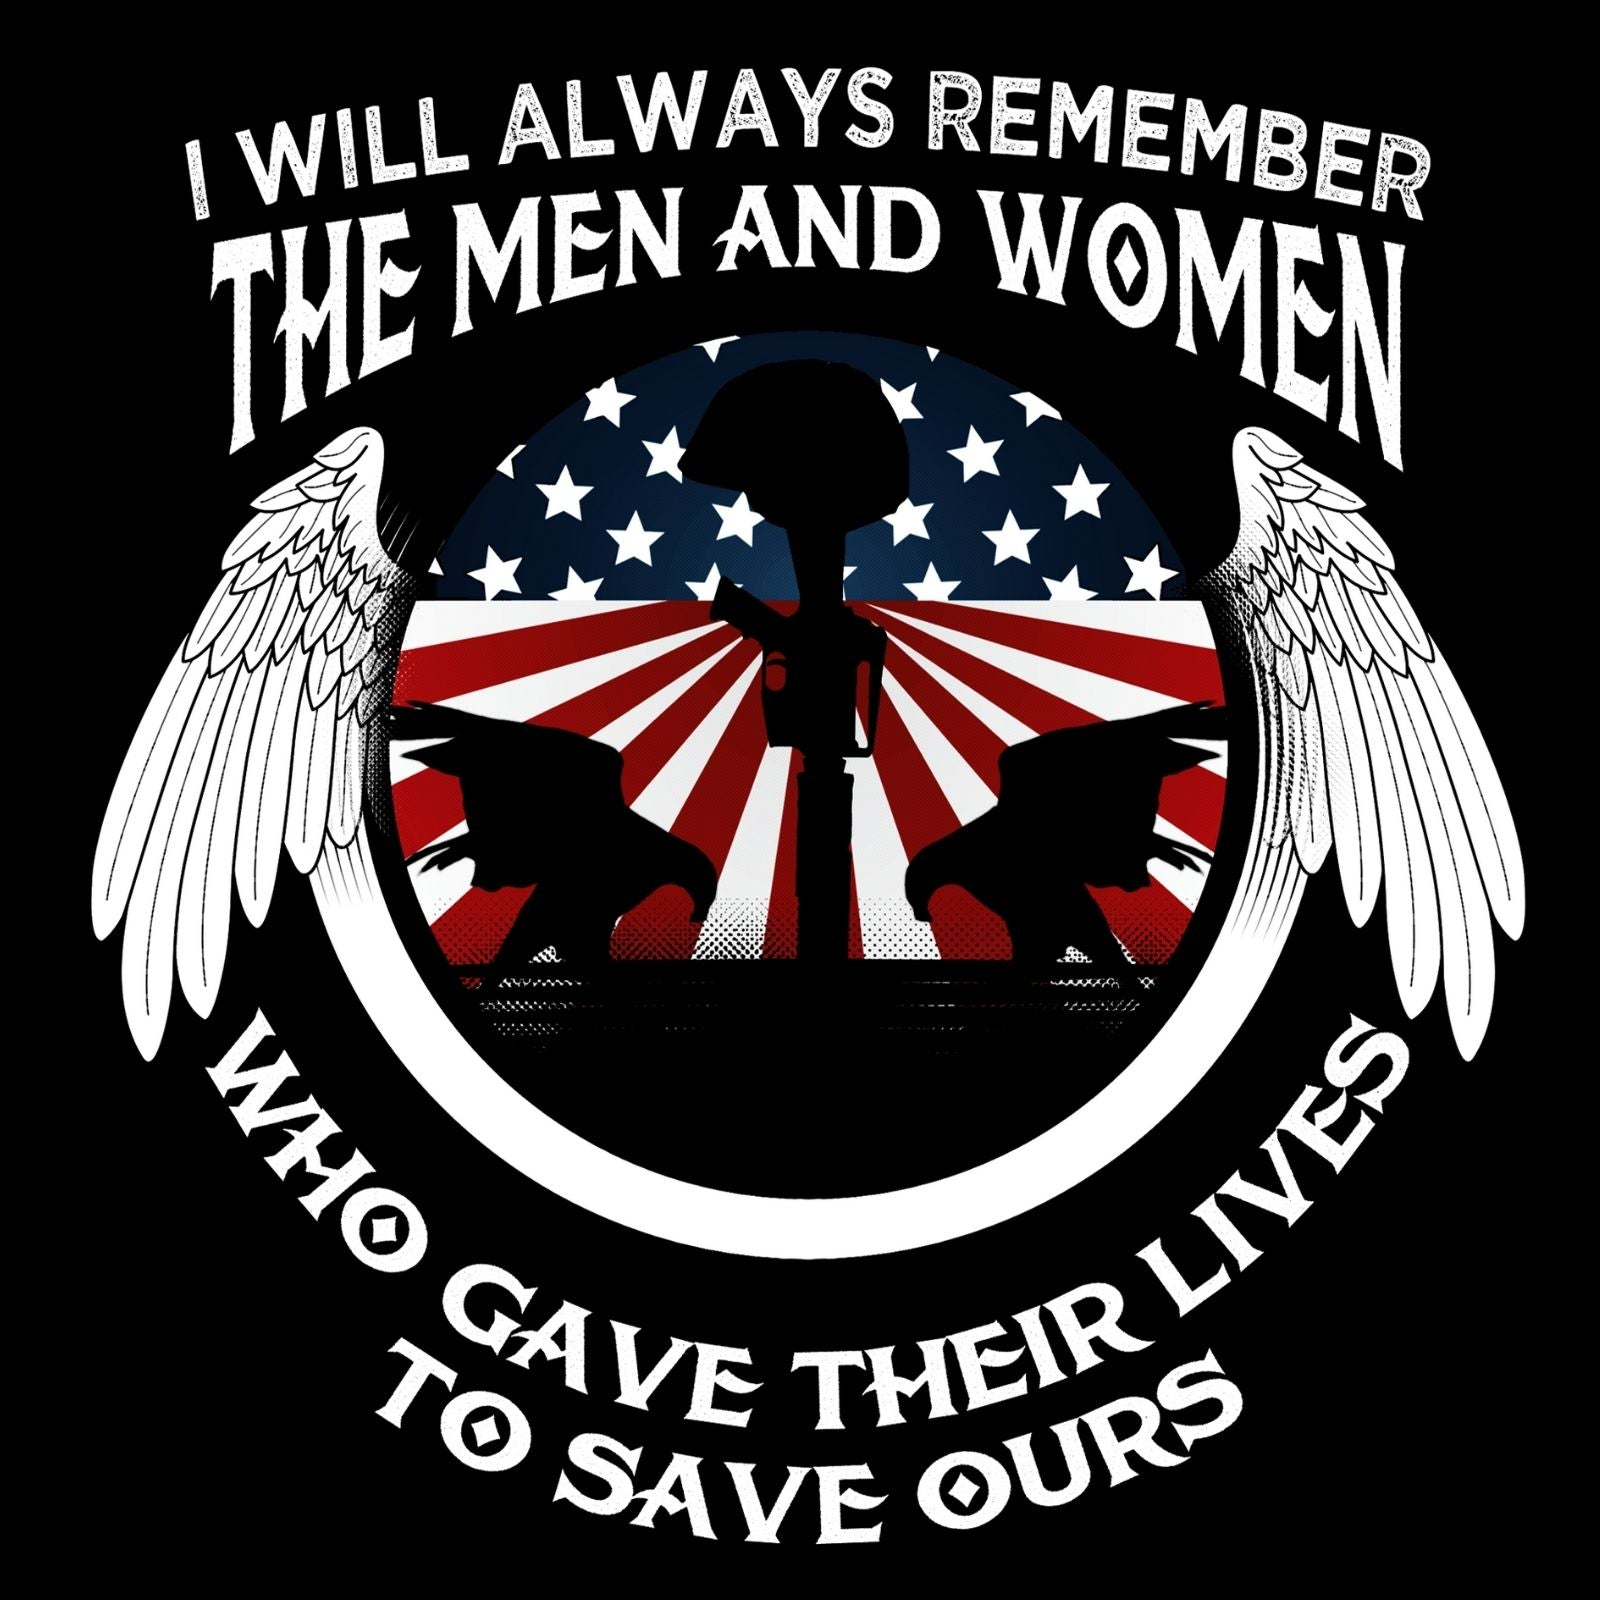 I Will Always Remember The Men And Women Who Gave Their Lives To Save Ours - Bastard Graphics